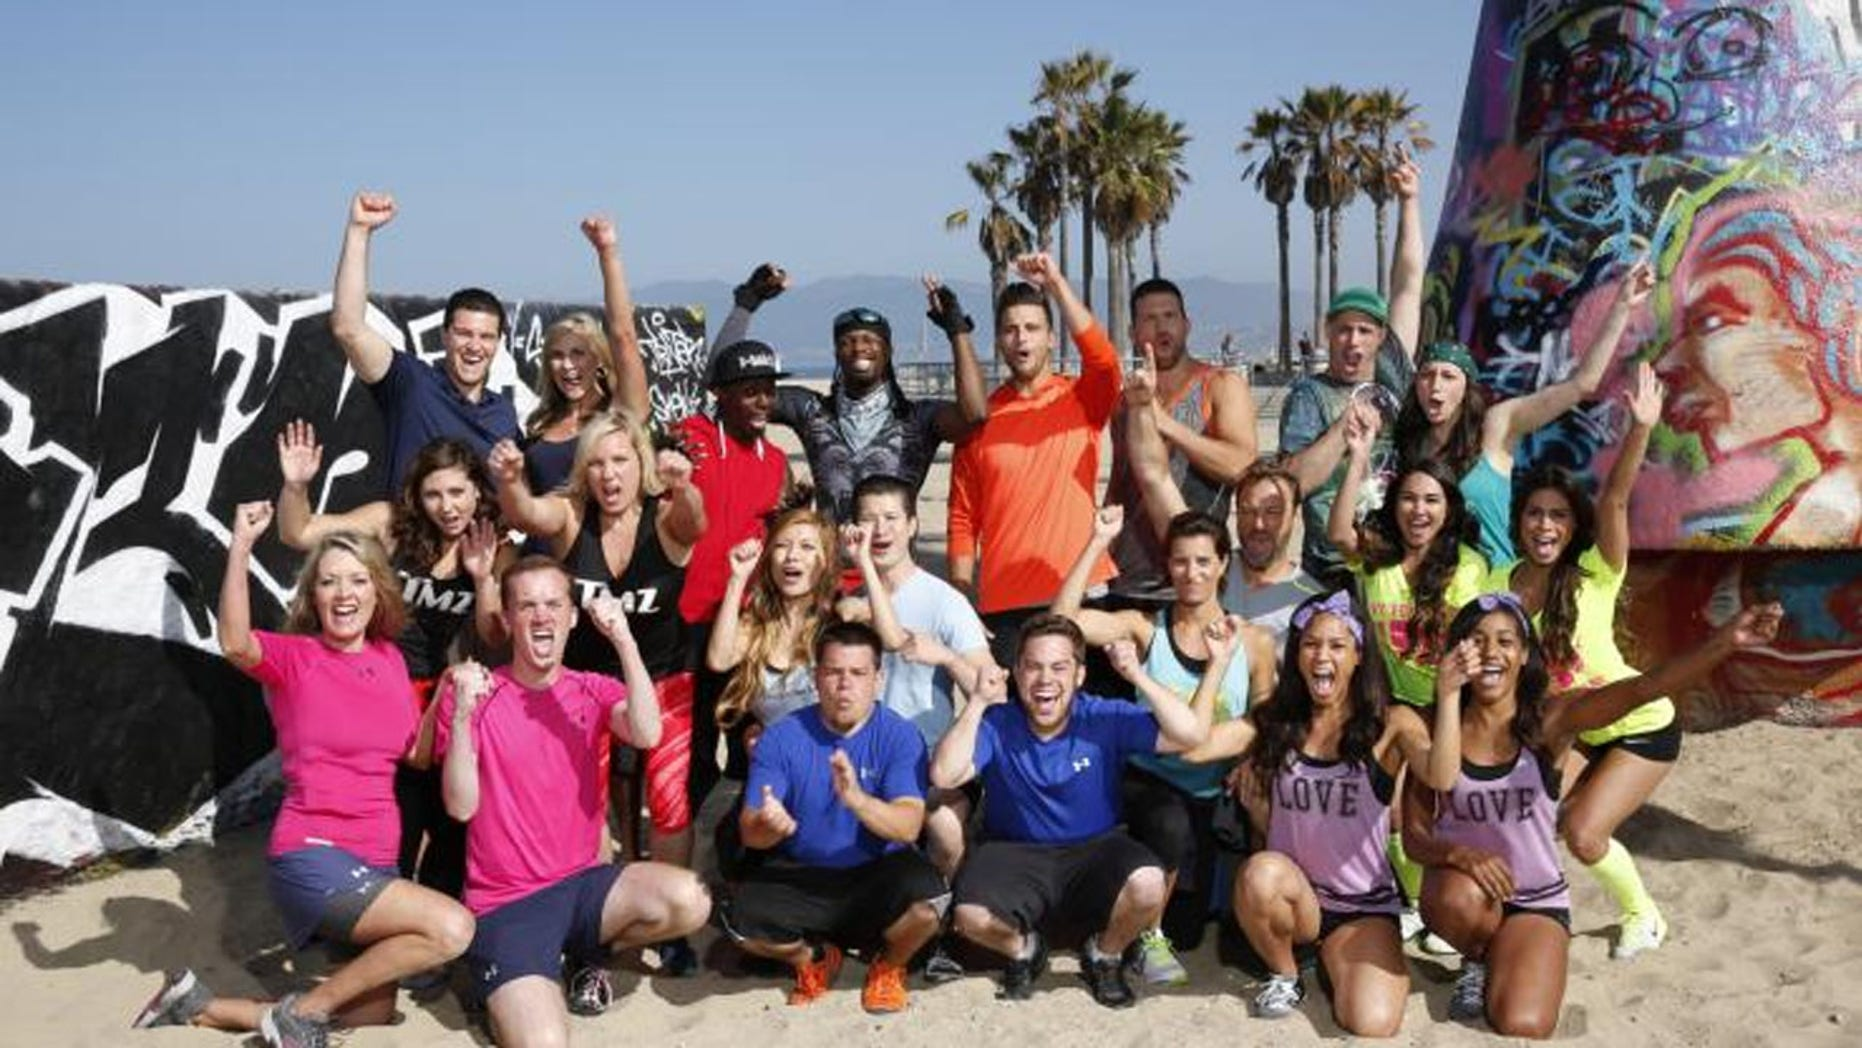 """The cast of season 27 of """"The Amazing Race"""" includes a team of TMZ co-workers, former New York Jets cheerleaders, doctors, teachers, retail managers and are paired in combinations that include a mother and son, siblings and best friends."""